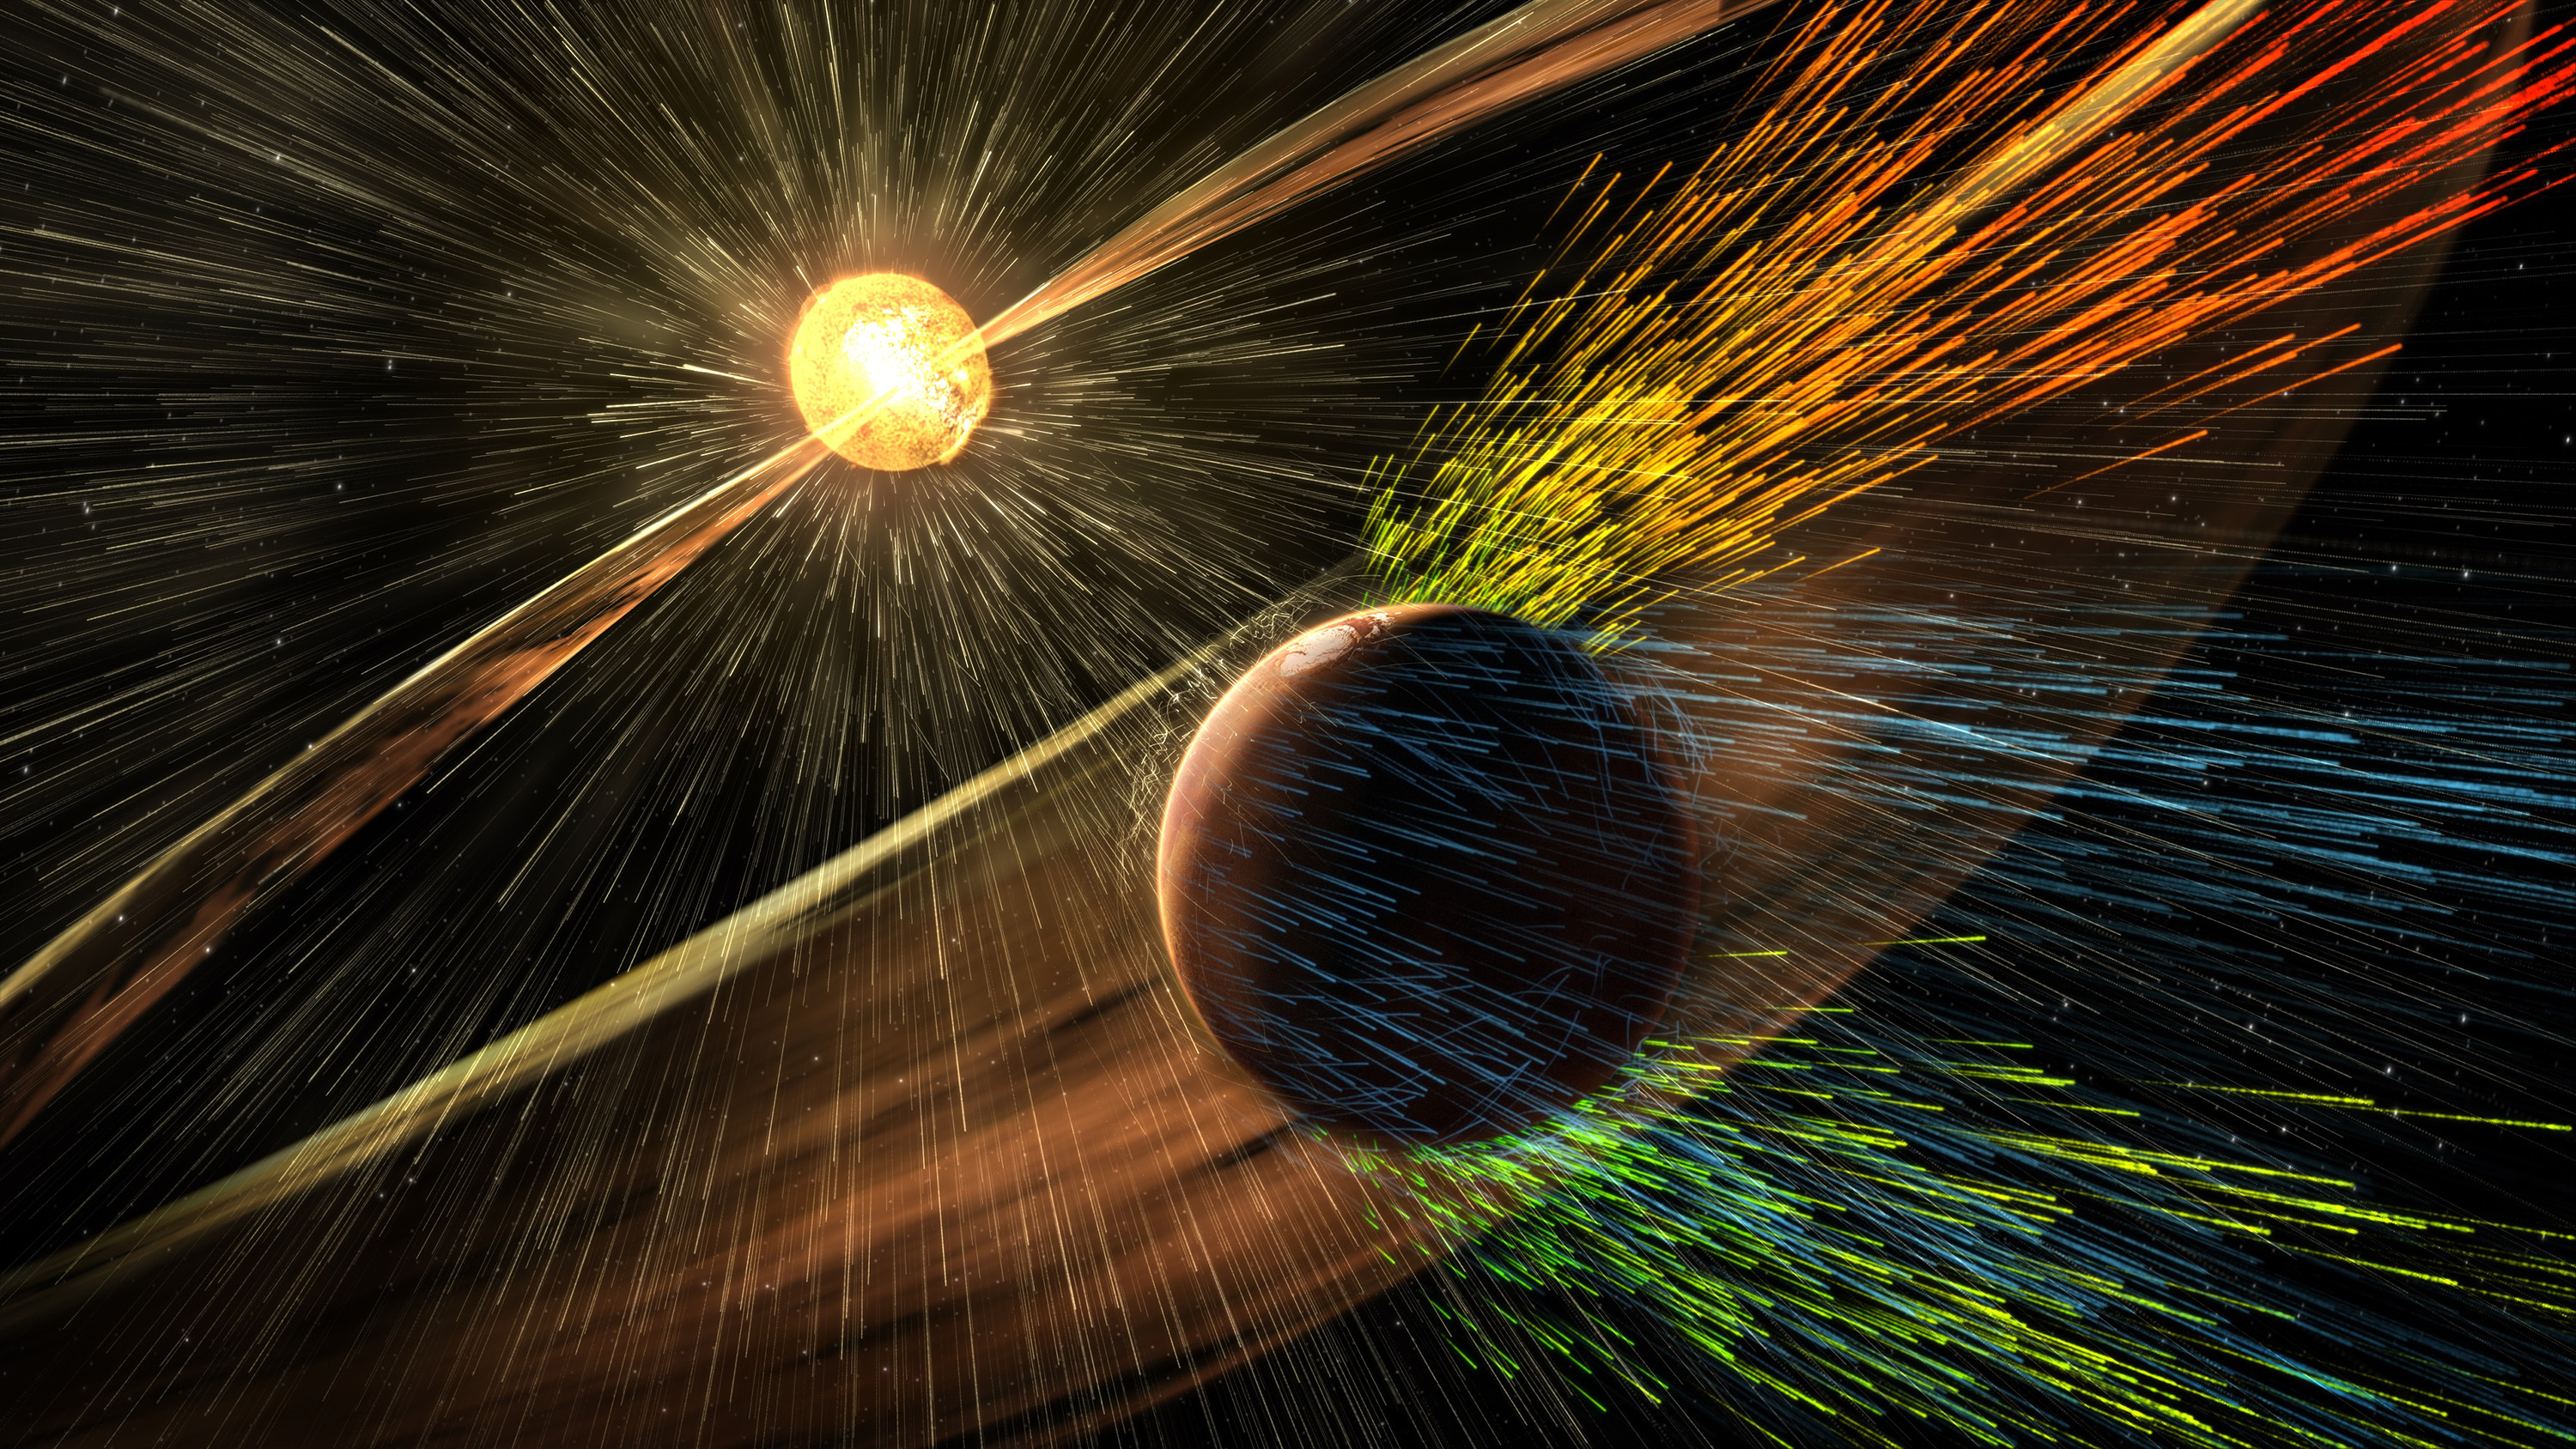 An undated artist's rendering depicts a solar storm hitting Mars and stripping ions from the planet's upper atmosphere in this NASA handout released November 5, 2015. Scientists have documented a solar storm blasting away Mars' atmosphere, an important clue in a long-standing mystery of how a planet that was once like Earth turned into a cold, dry desert, research published on Thursday shows. On March 8, NASA's Mars-orbiting MAVEN spacecraft caught such a storm stripping away the planet's atmosphere, according to a report published in this week's issue of the journal Science